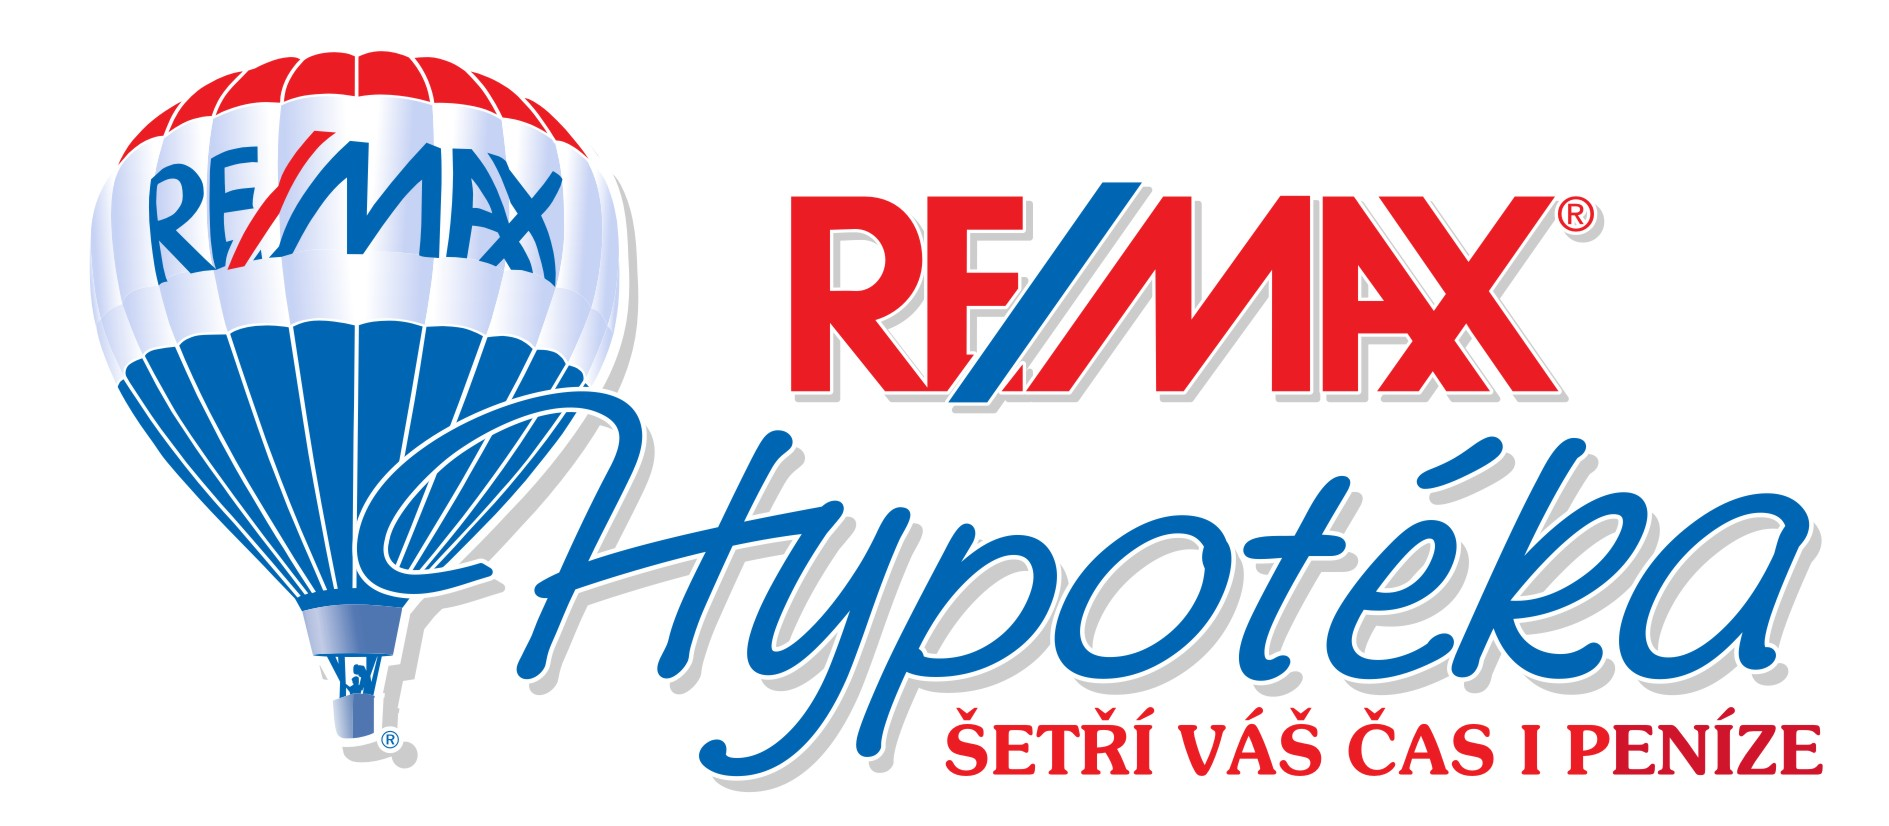 remax hypoteka